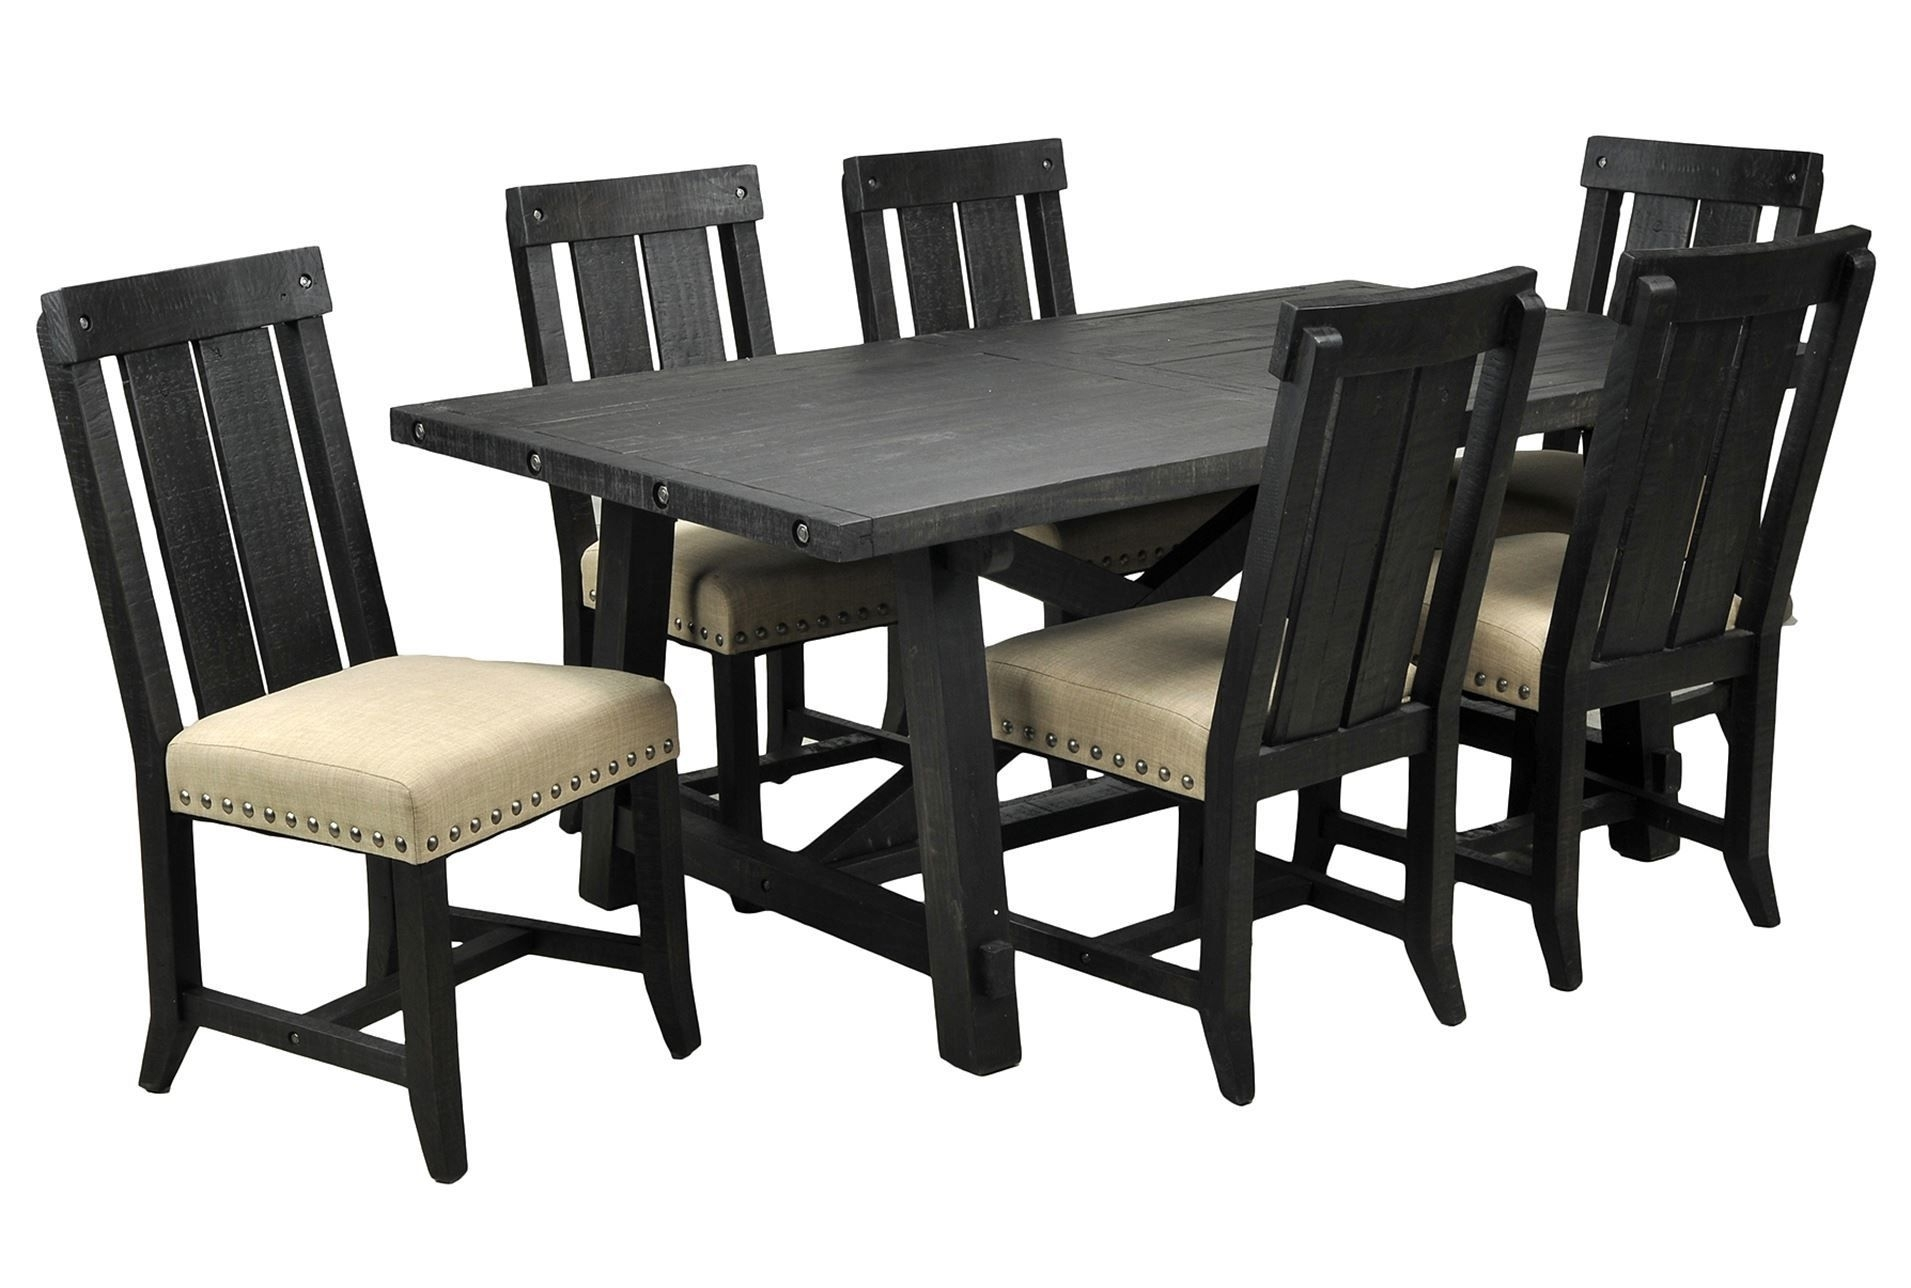 Jaxon 7 Piece Rectangle Dining Set W/wood Chairs | For The House I Throughout Most Current Wyatt 6 Piece Dining Sets With Celler Teal Chairs (Photo 7 of 20)